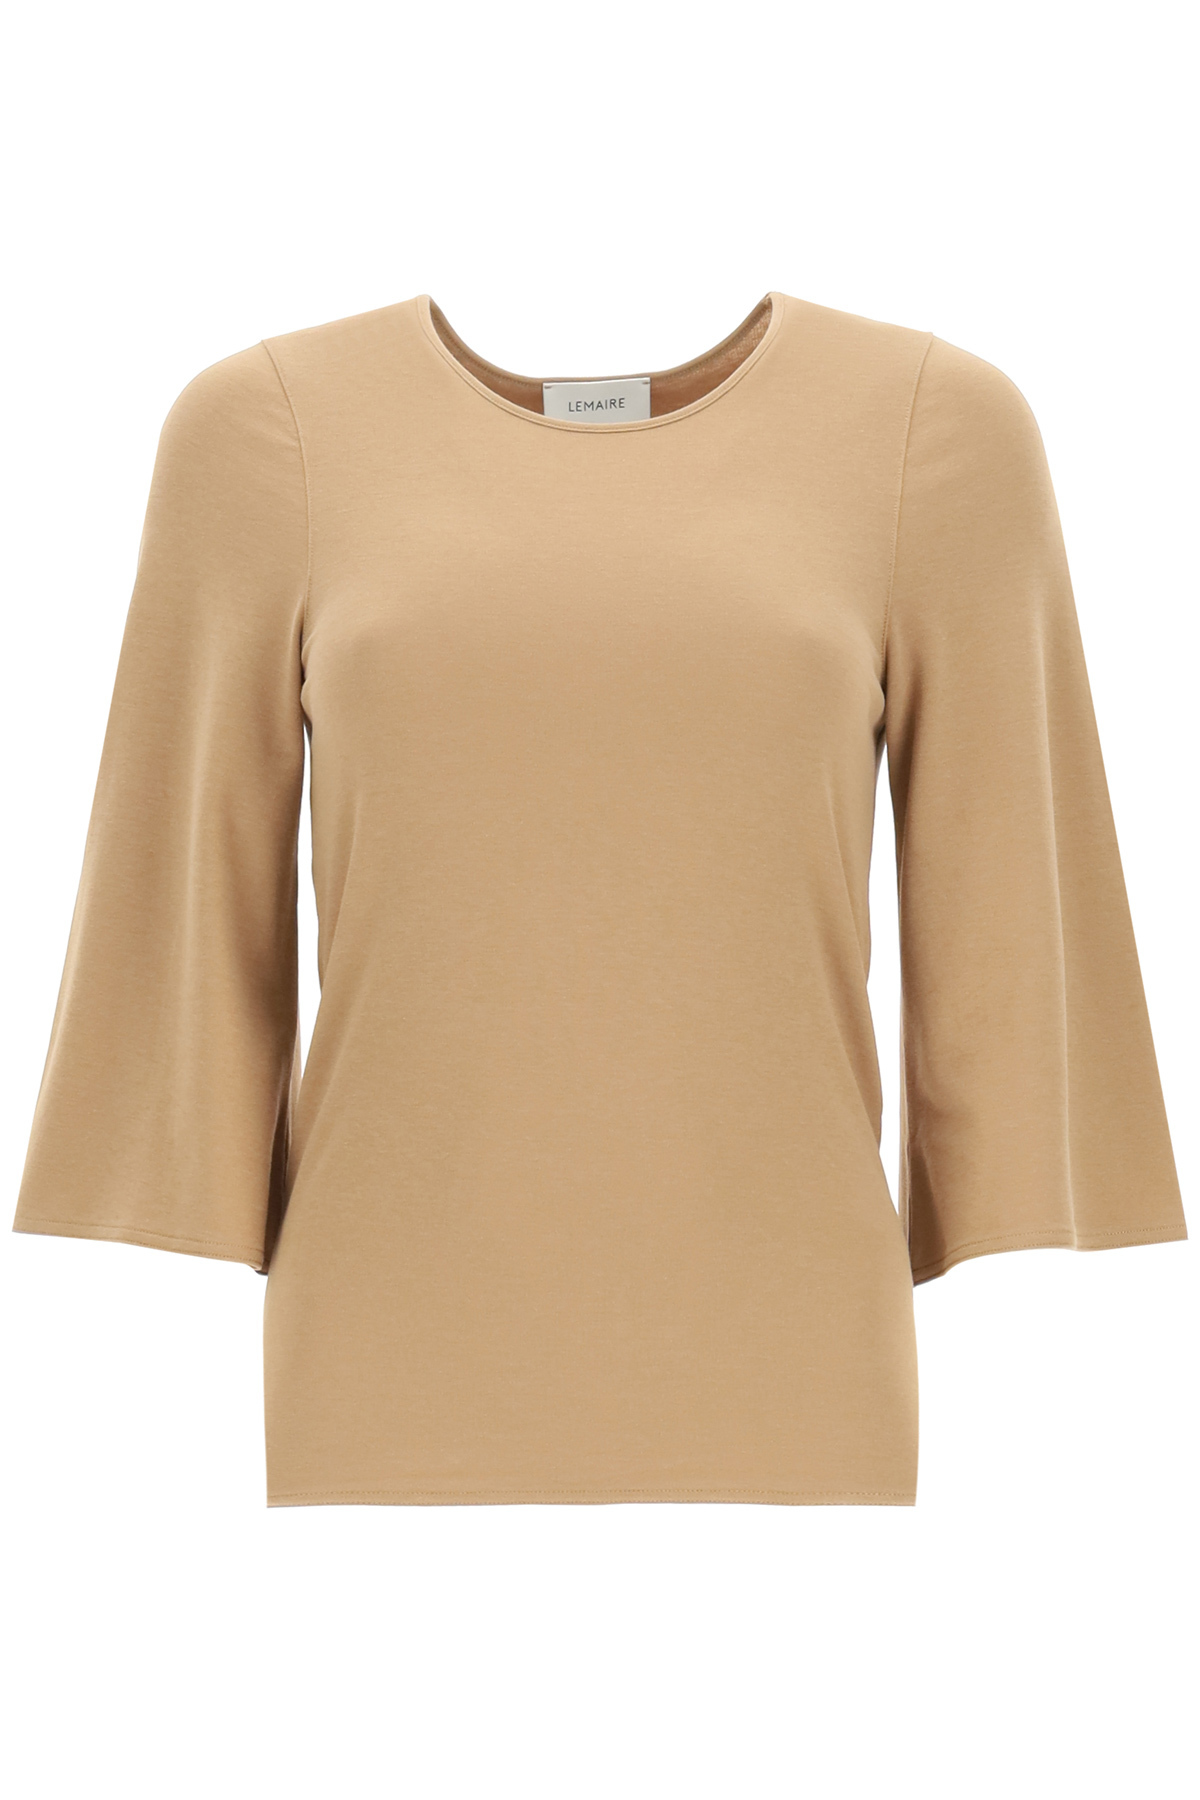 Lemaire T-SHIRT 3/4 SLEEVES